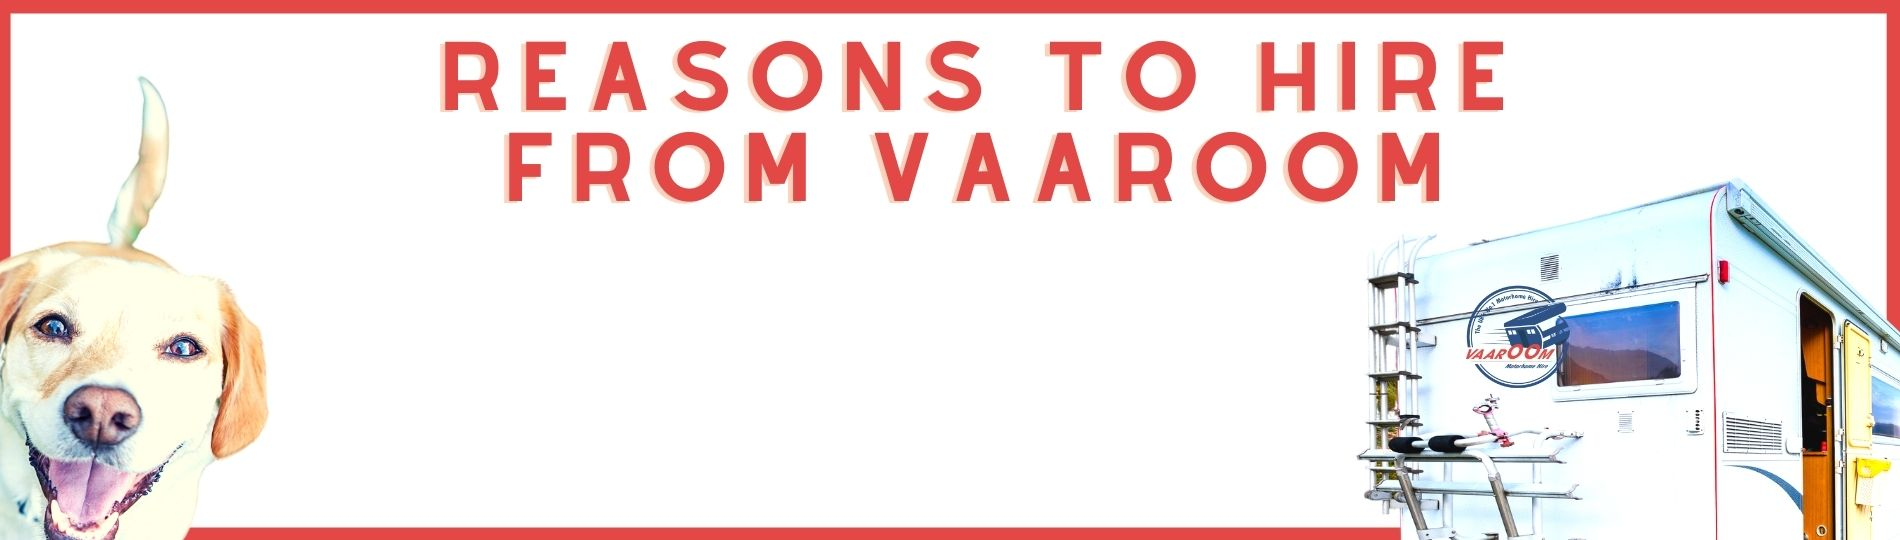 Reasons to hire from vaaroom